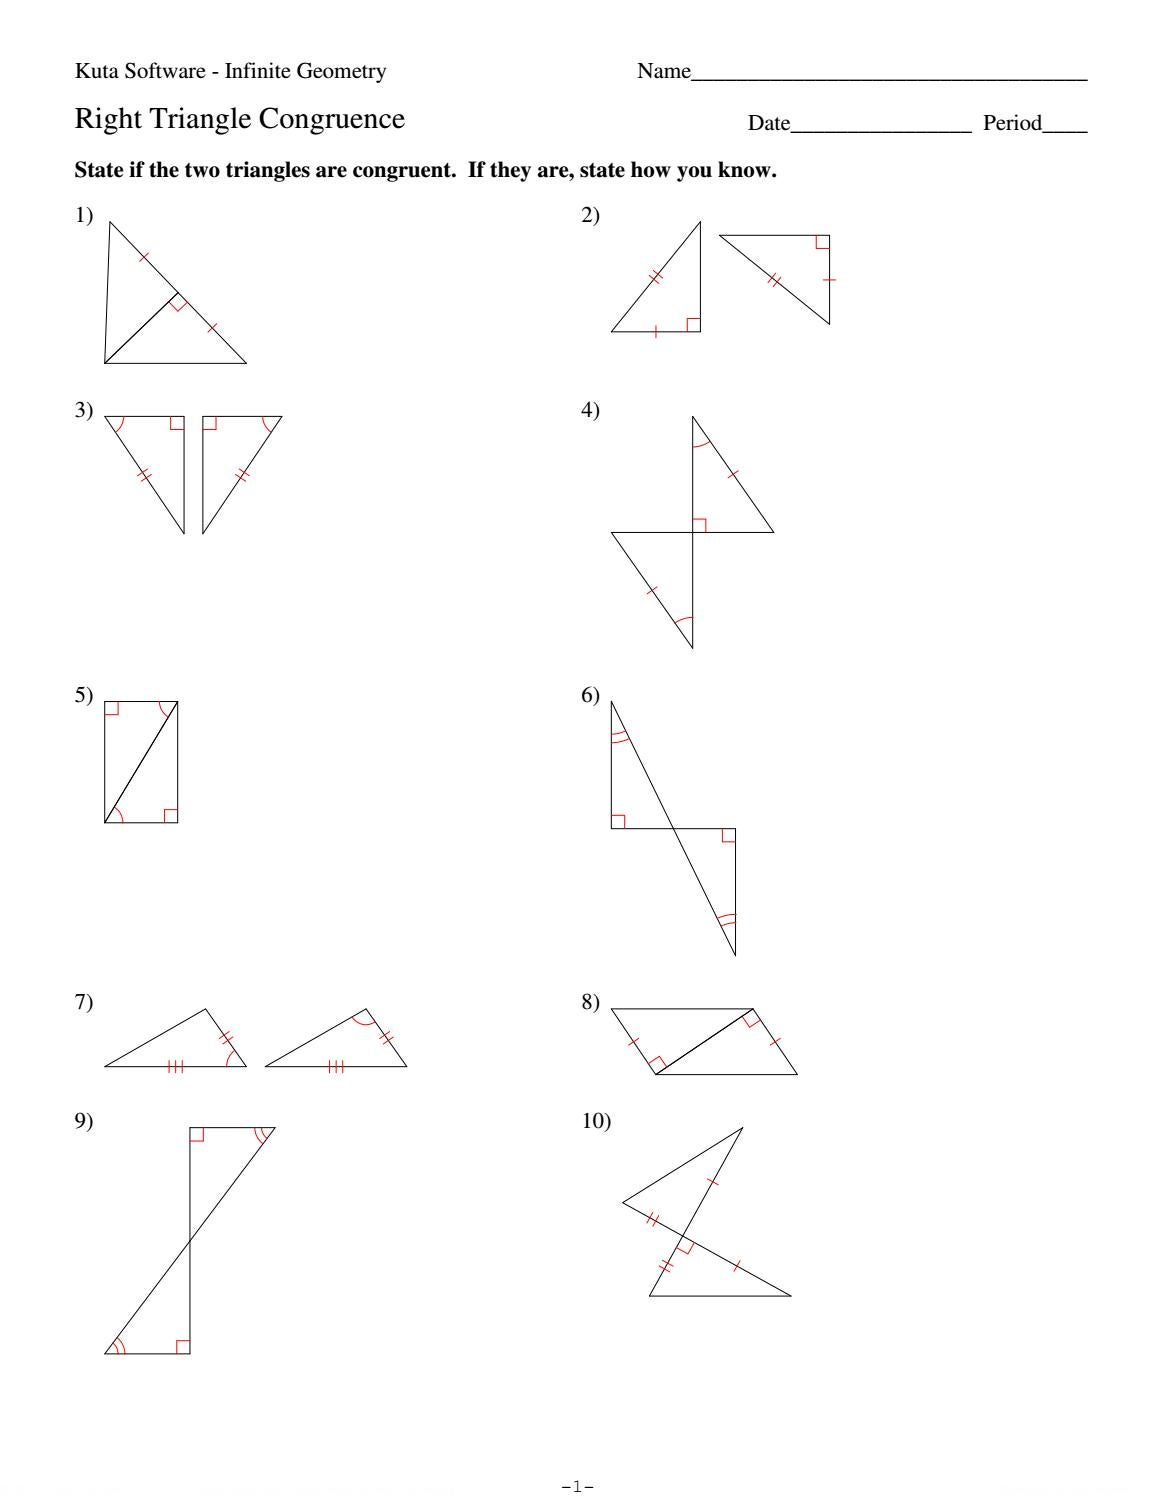 4 right triangle congruence by HHS Geometry - issuu